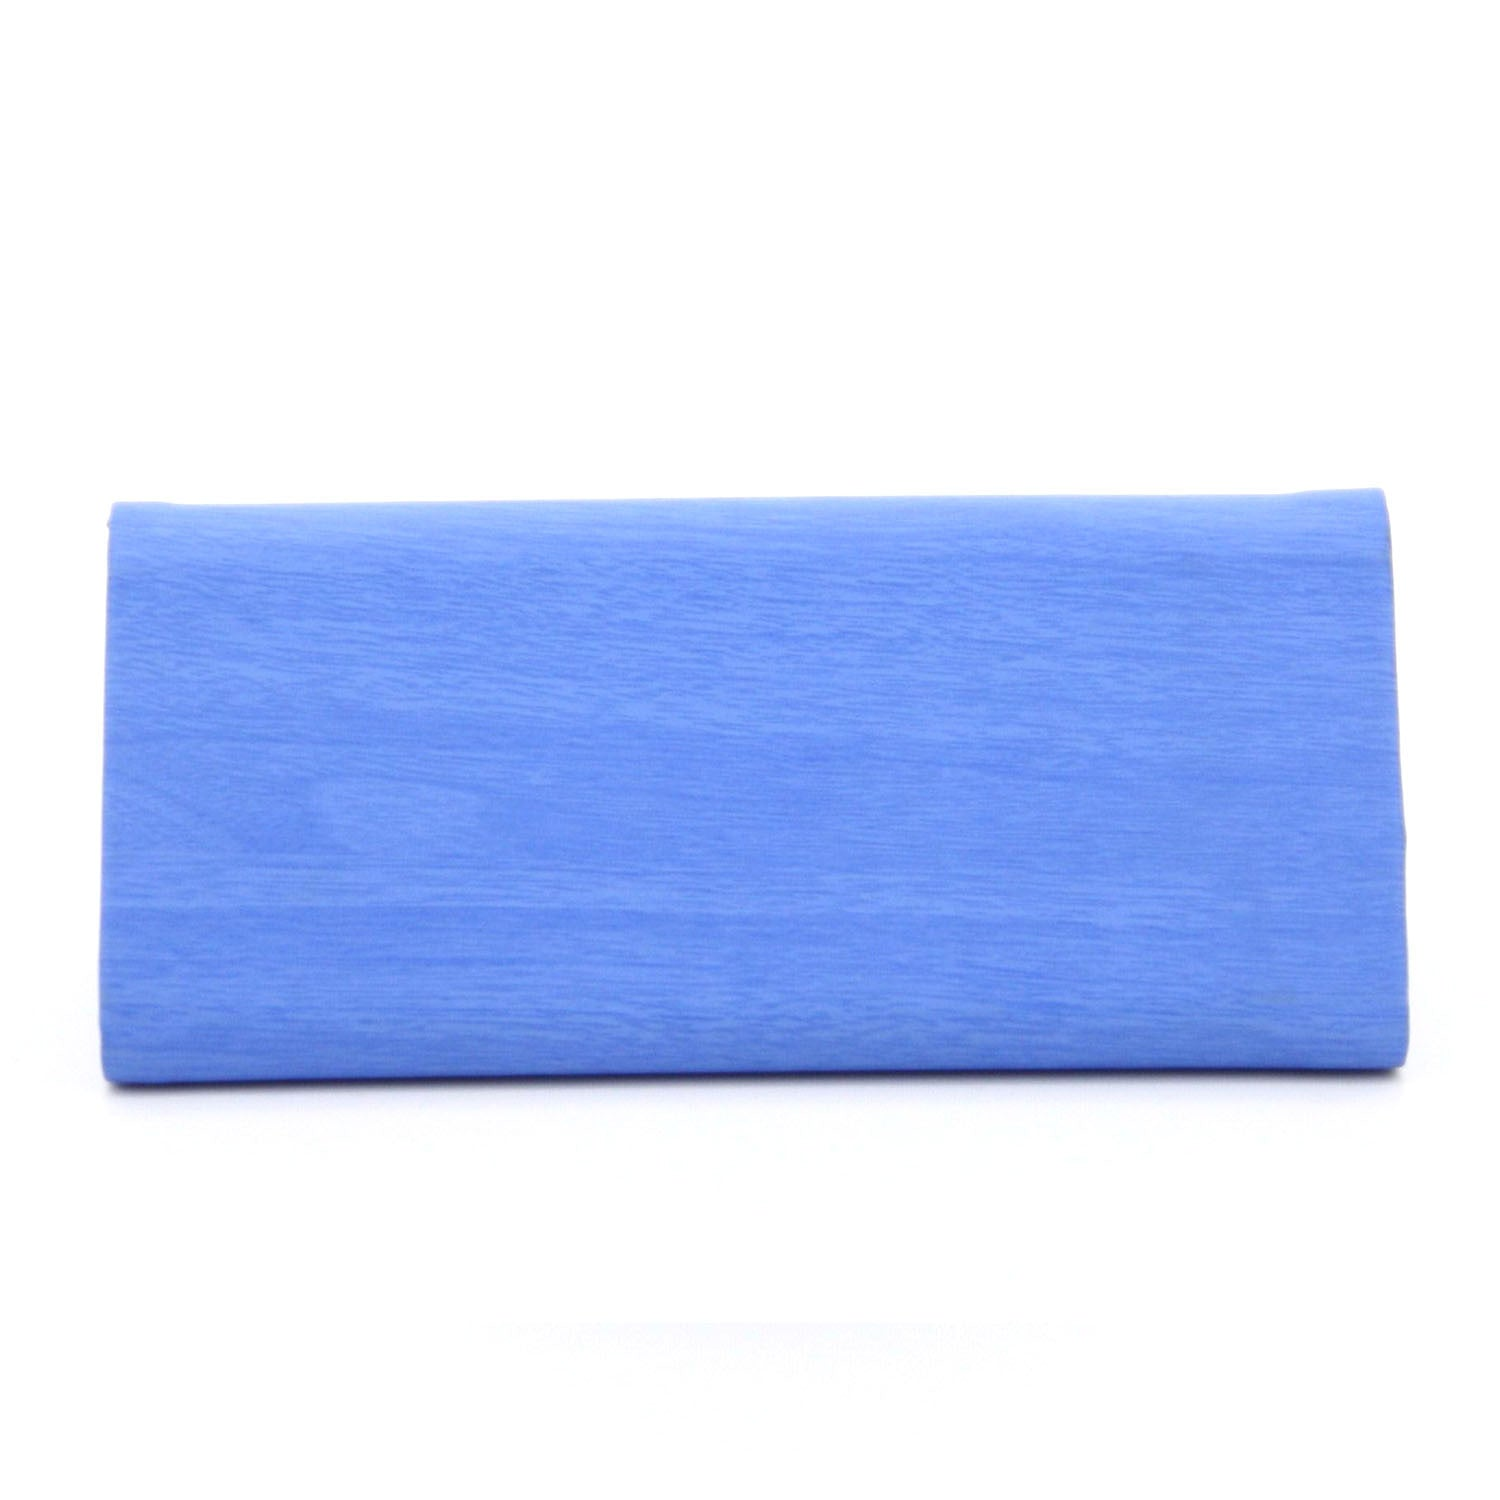 C16MR669BL Collapsible Eyeglass Case (Light Blue)